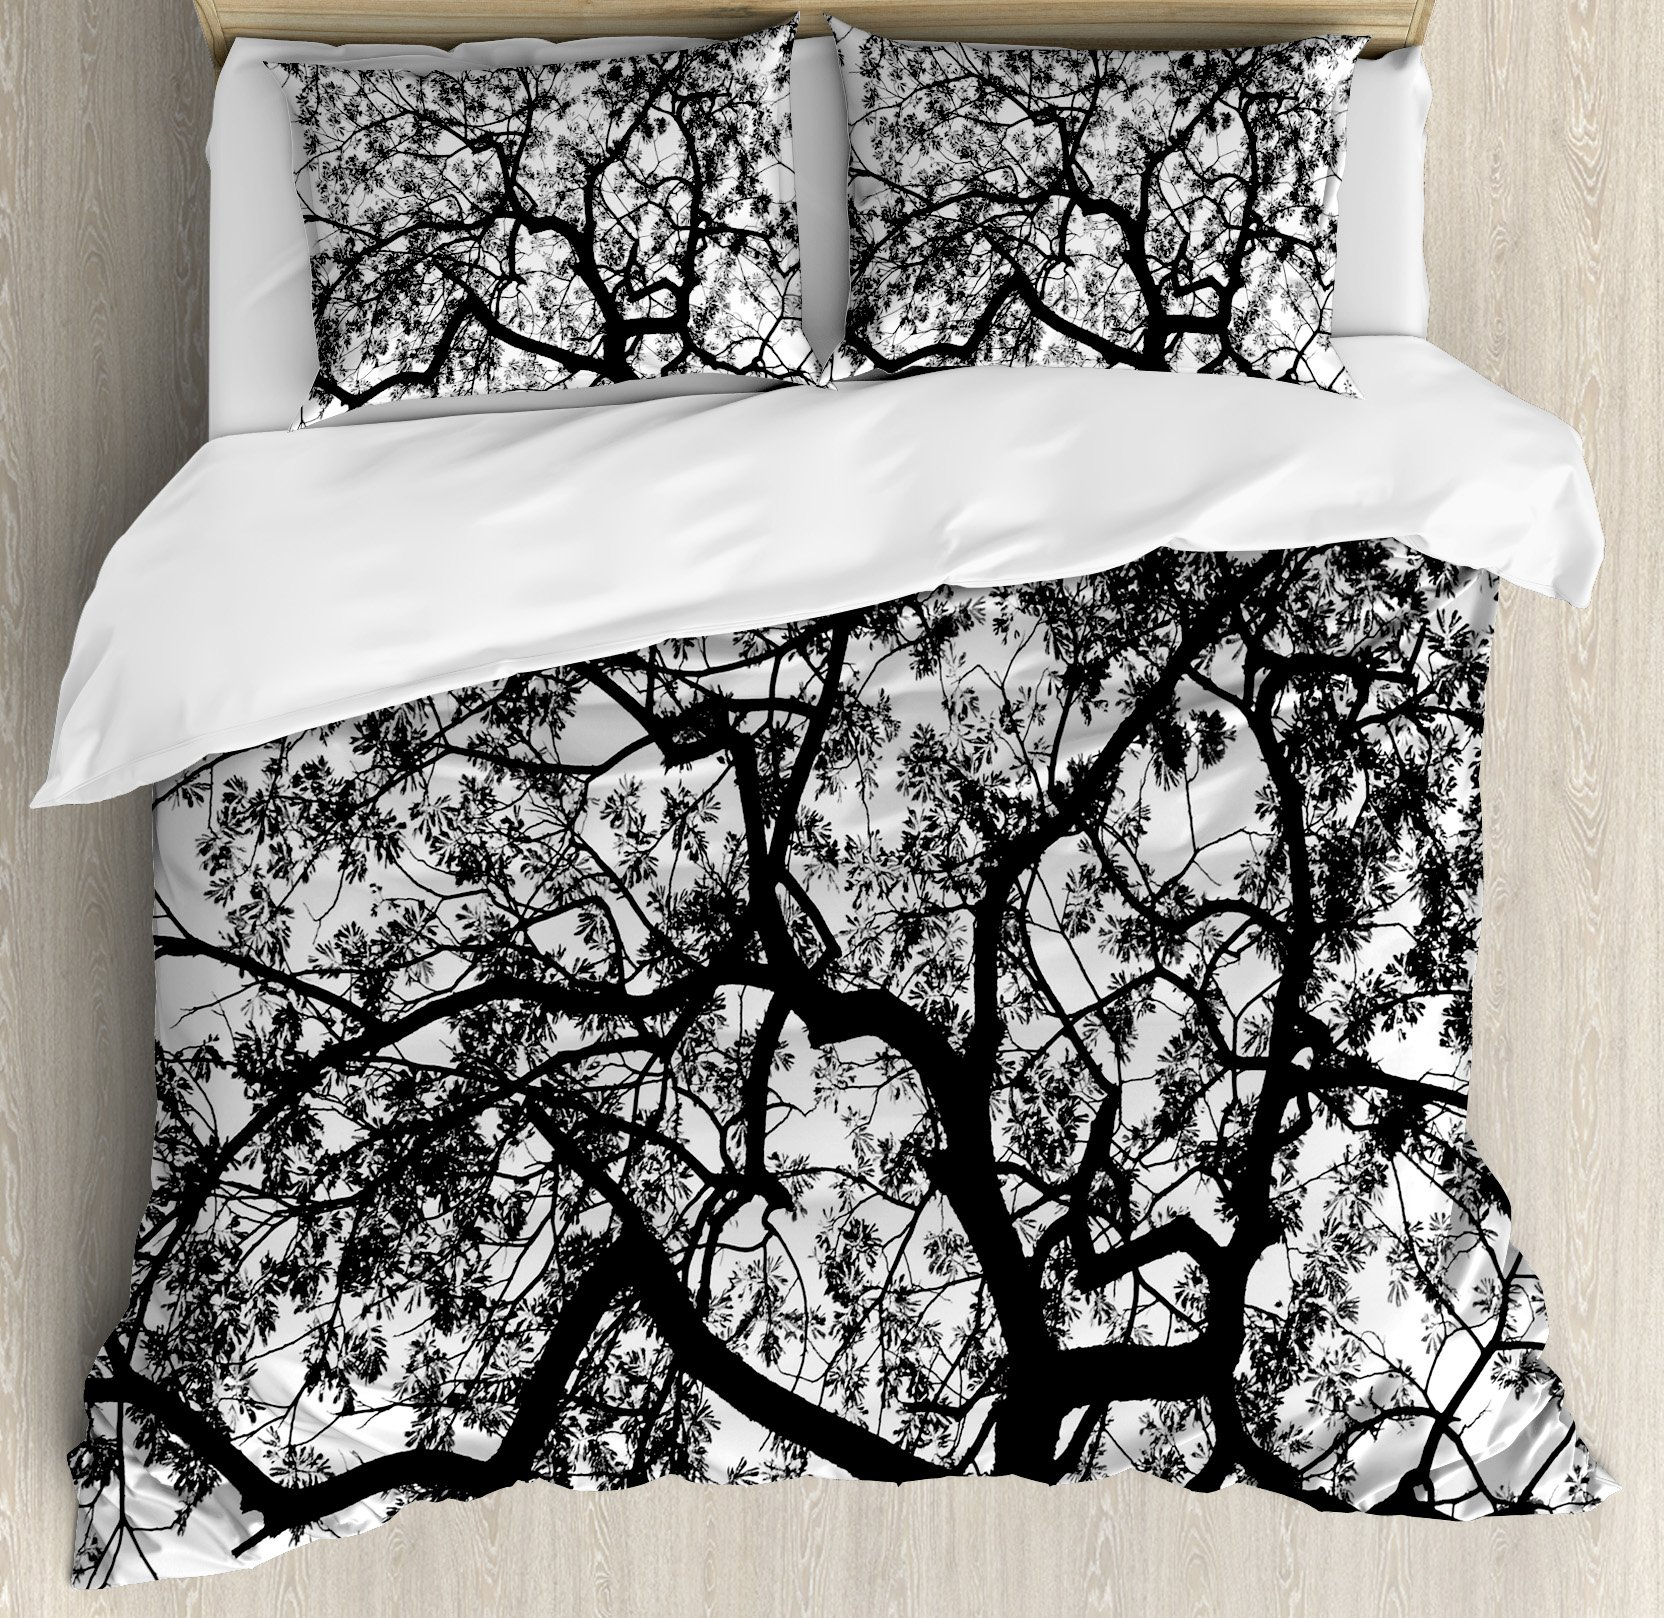 Apartment Decor Duvet Cover Set by Ambesonne, Forest Tree Branches Modern Decor Spooky Horror Movie Themed Print, 3 Piece Bedding Set with Pillow Shams, Queen / Full, Black and White